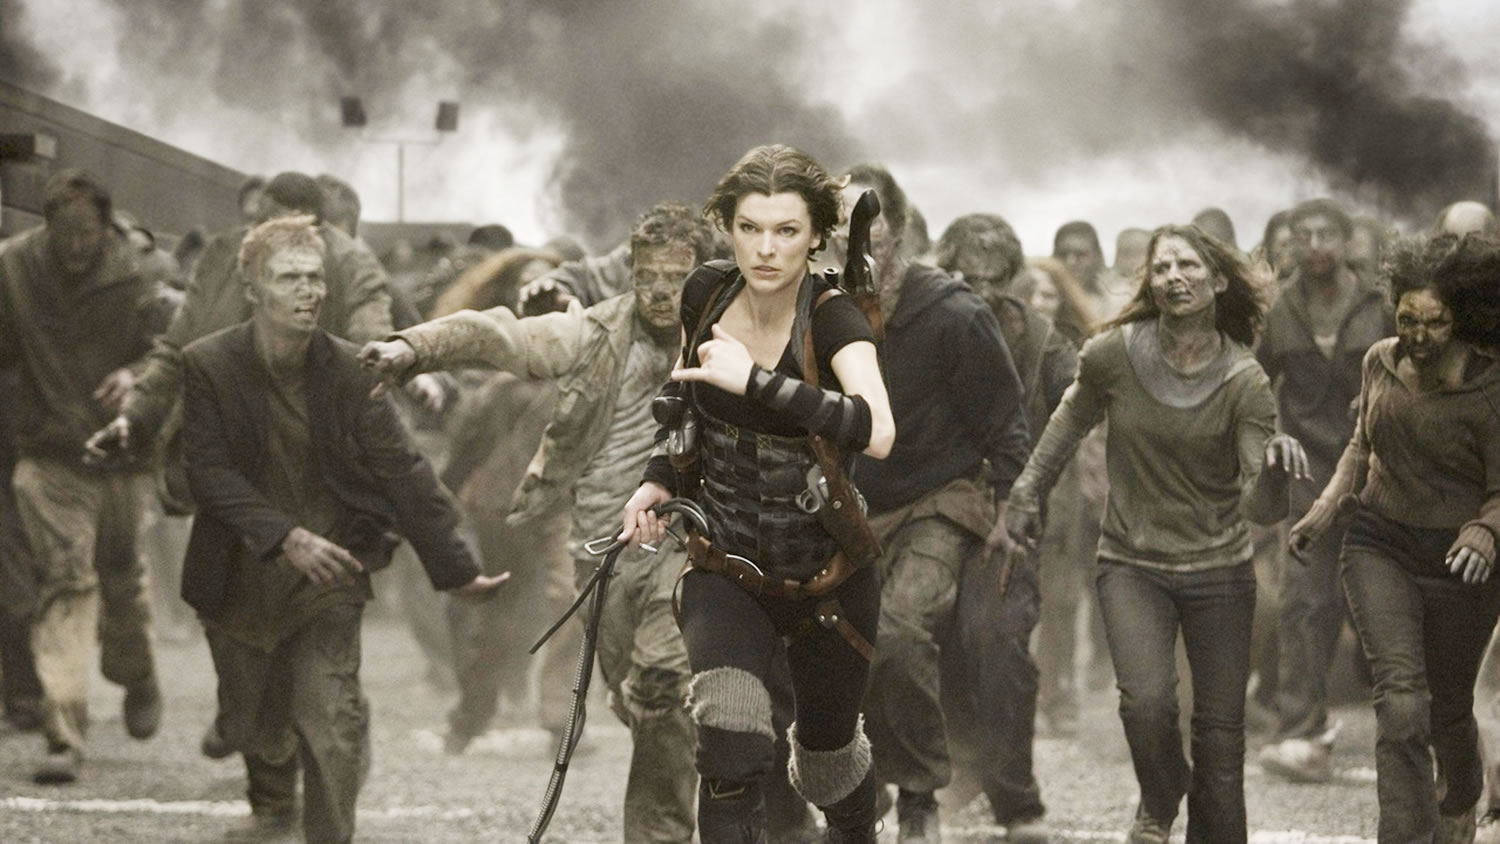 Post-Apocalyptic Movies - Resident Evil: The Final Chapter , milla jovovich in action